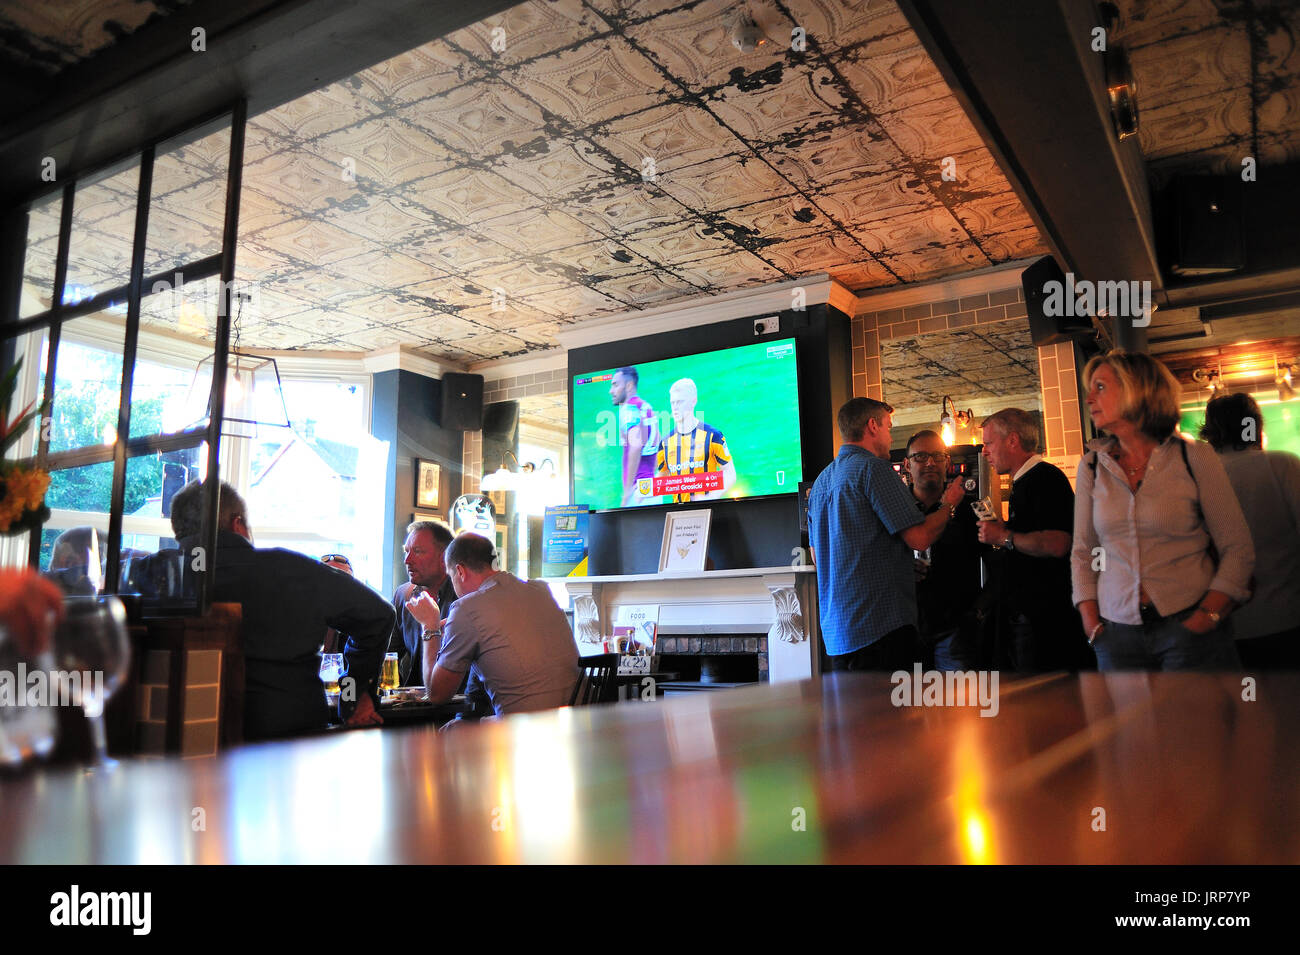 Customers in Porter Brook Pub Sheffield watching football on TV - Stock Image